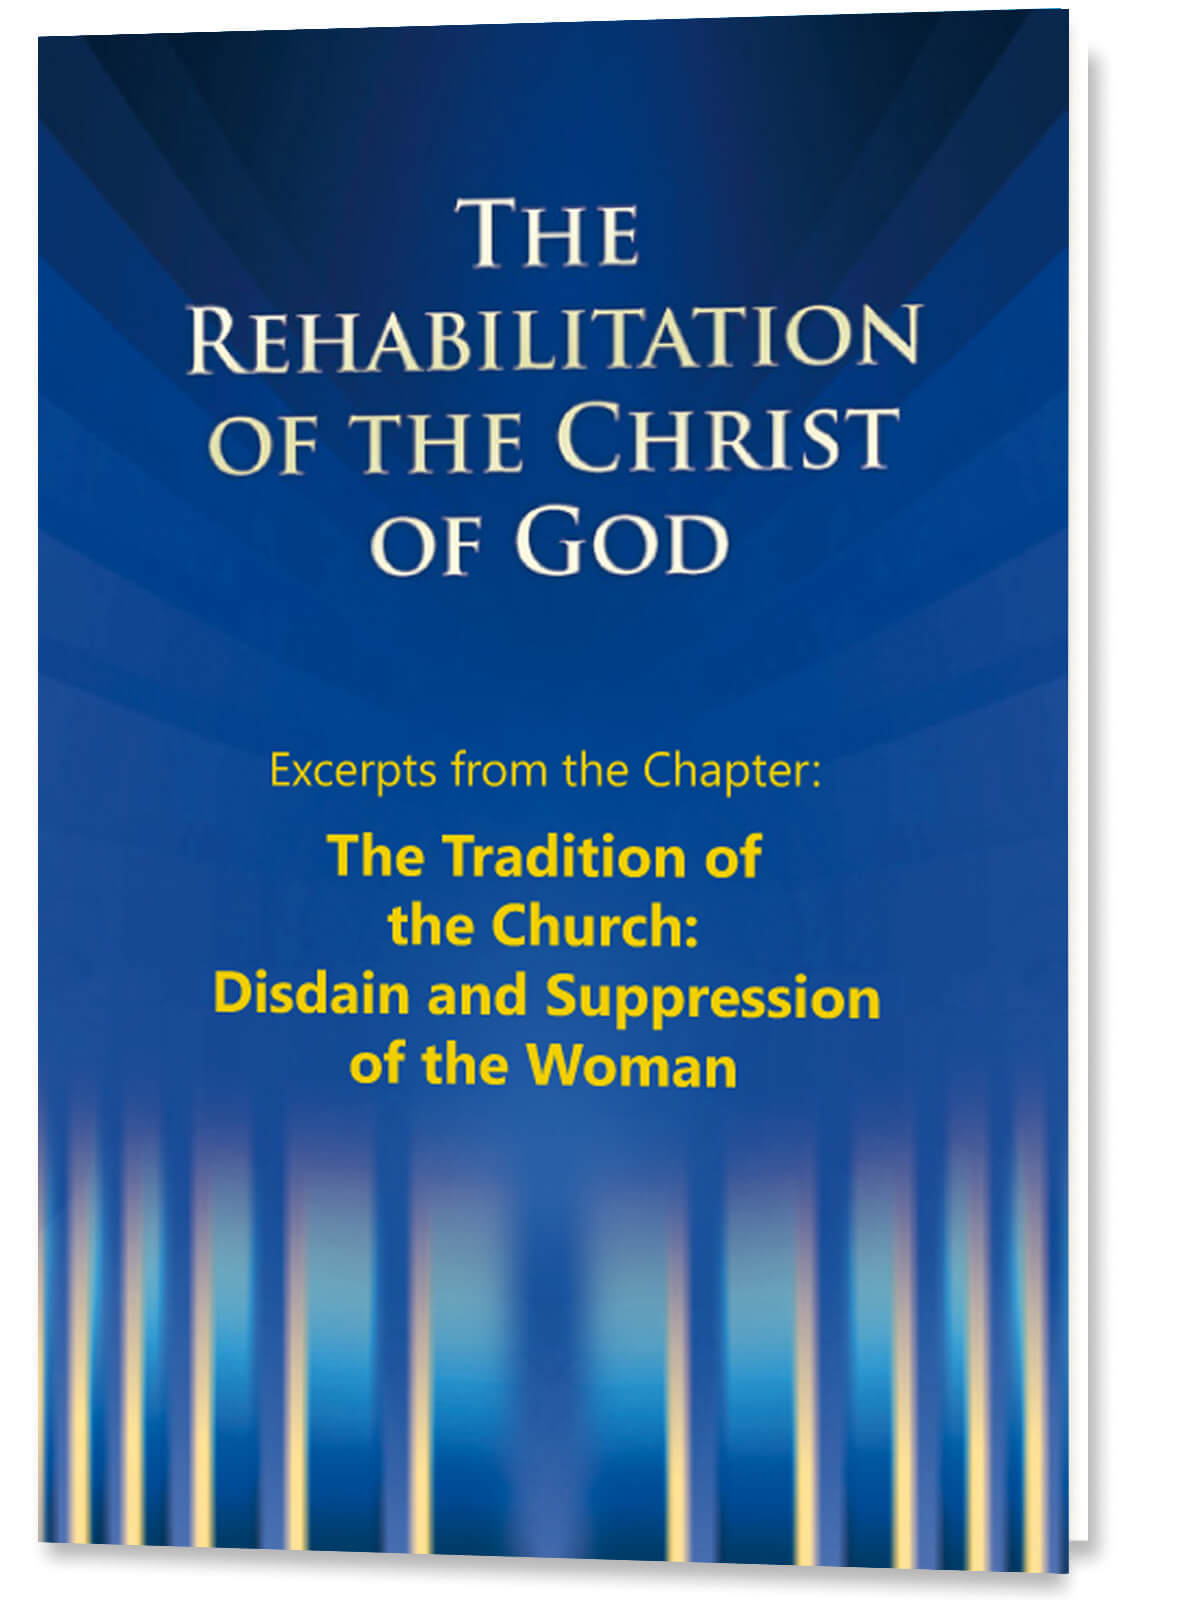 The Rehabilitation of the Christ of God - Excerpt - The Tradition of the Church: Disdain and Suppression of the Woman